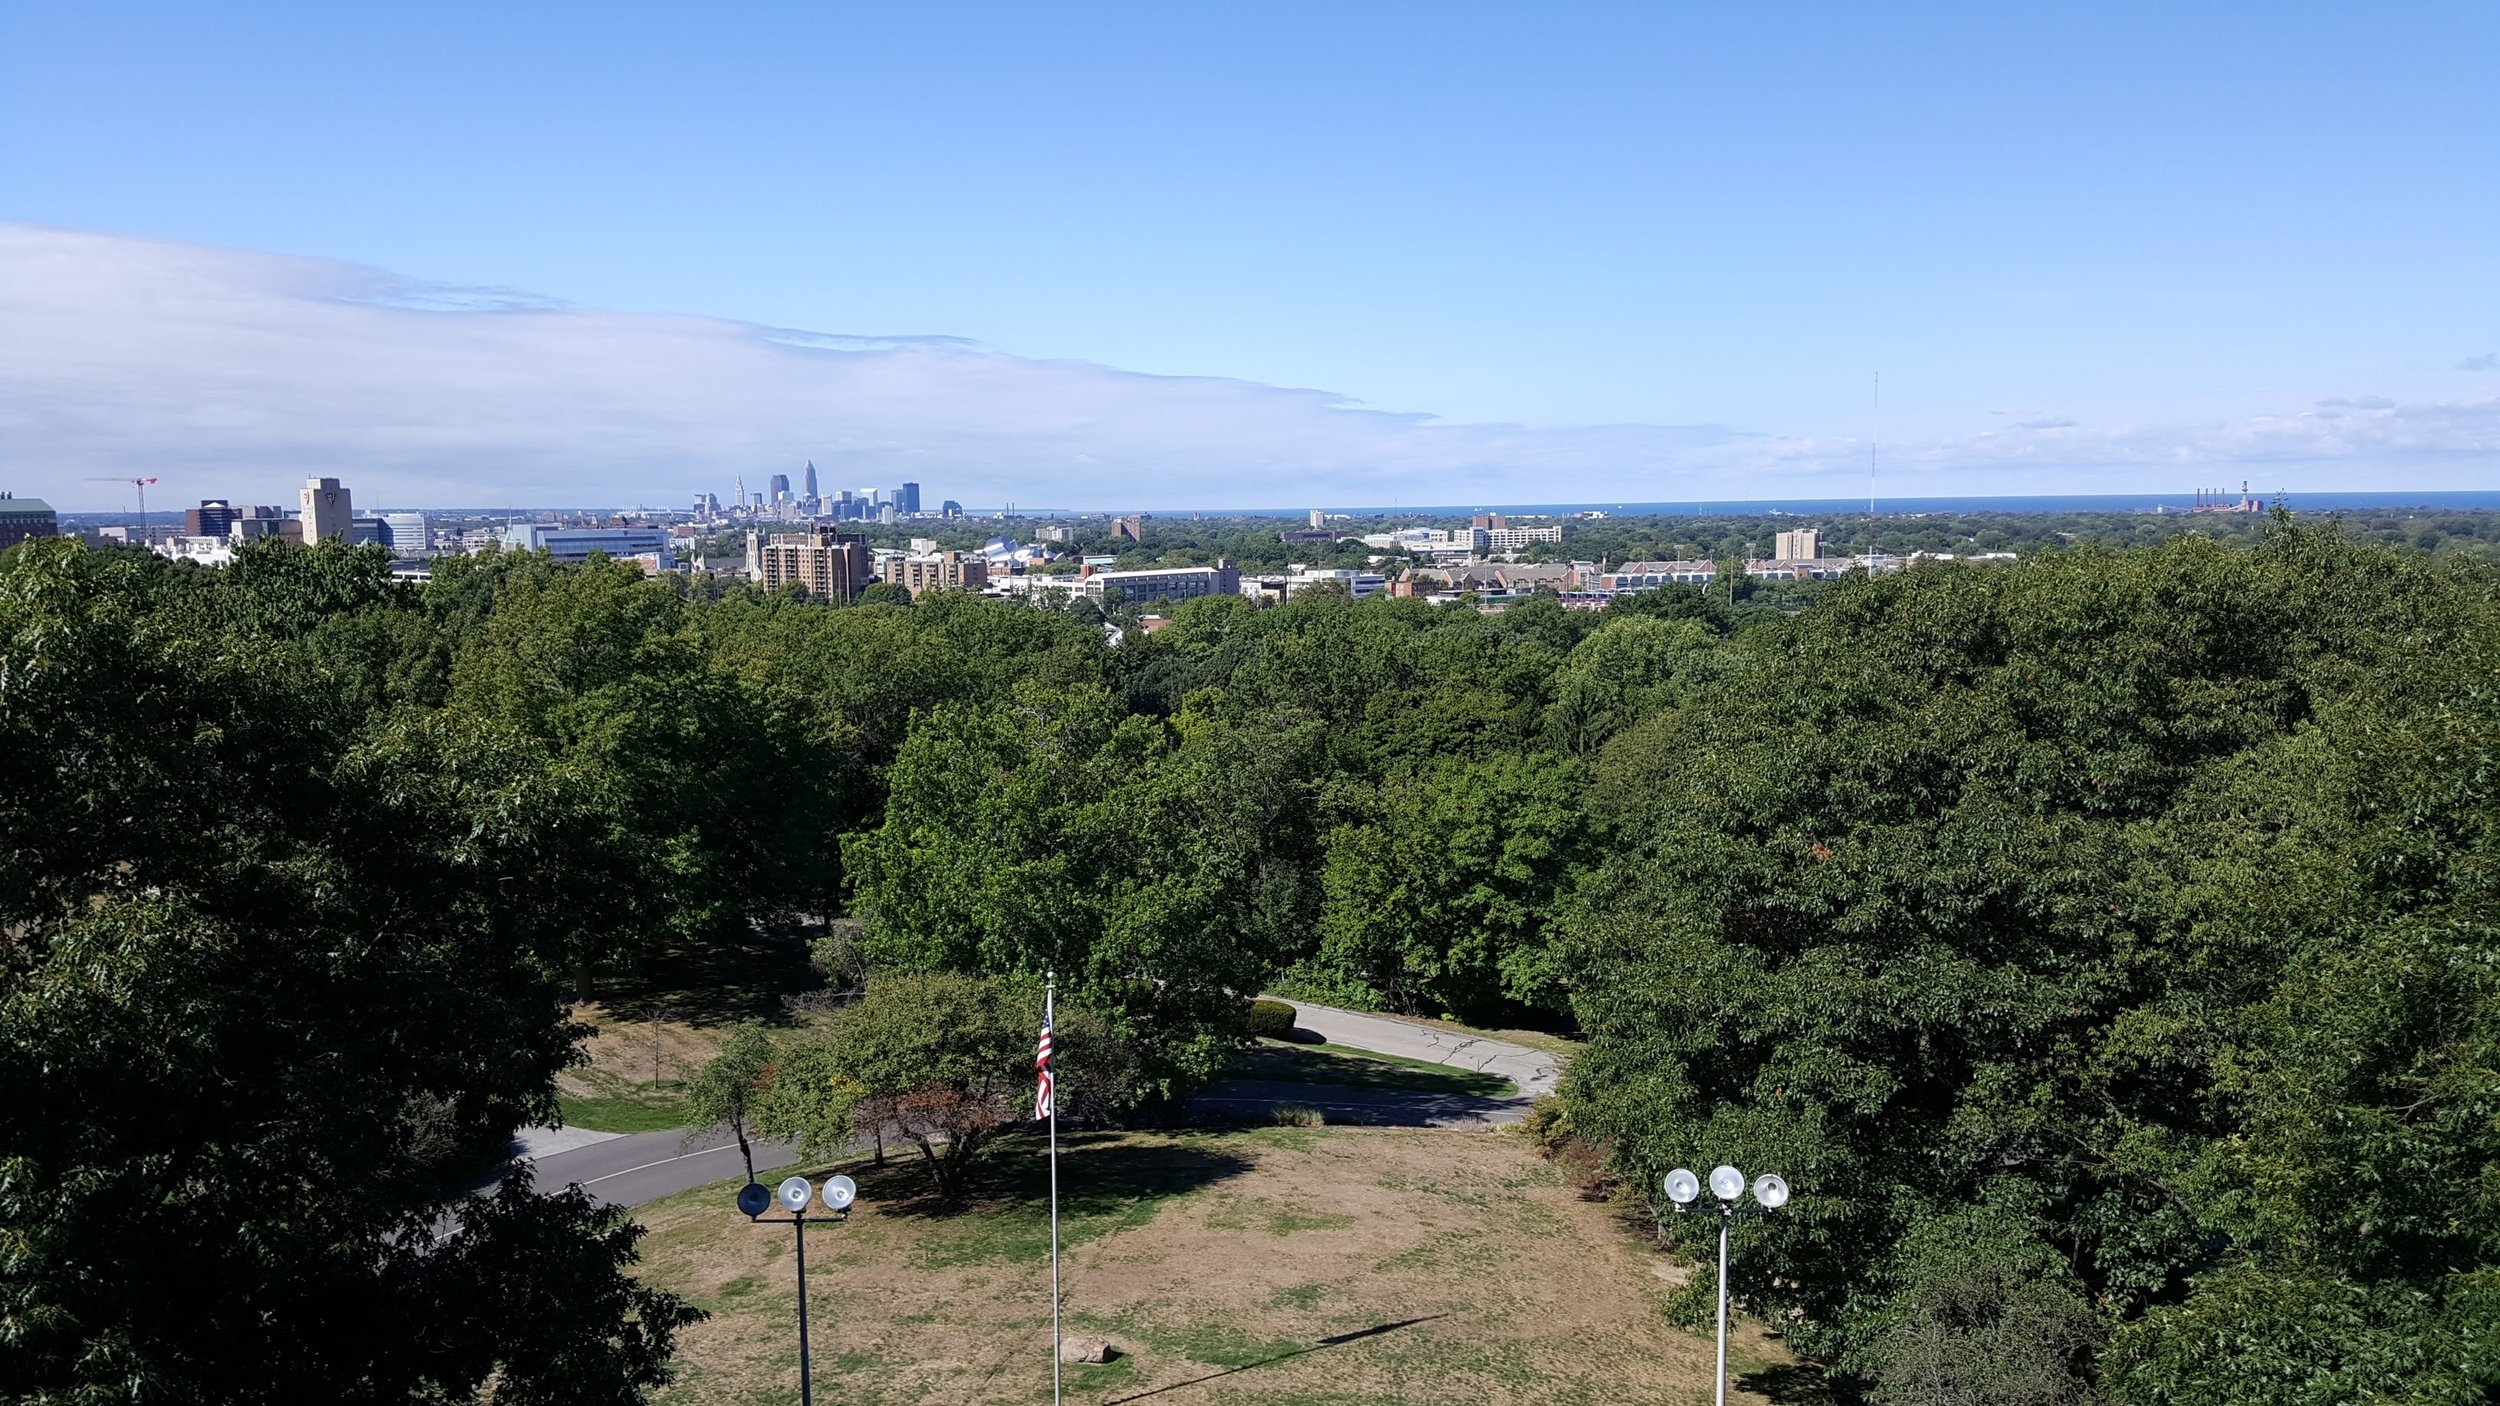 Spectacular views from the Garfield Memorial